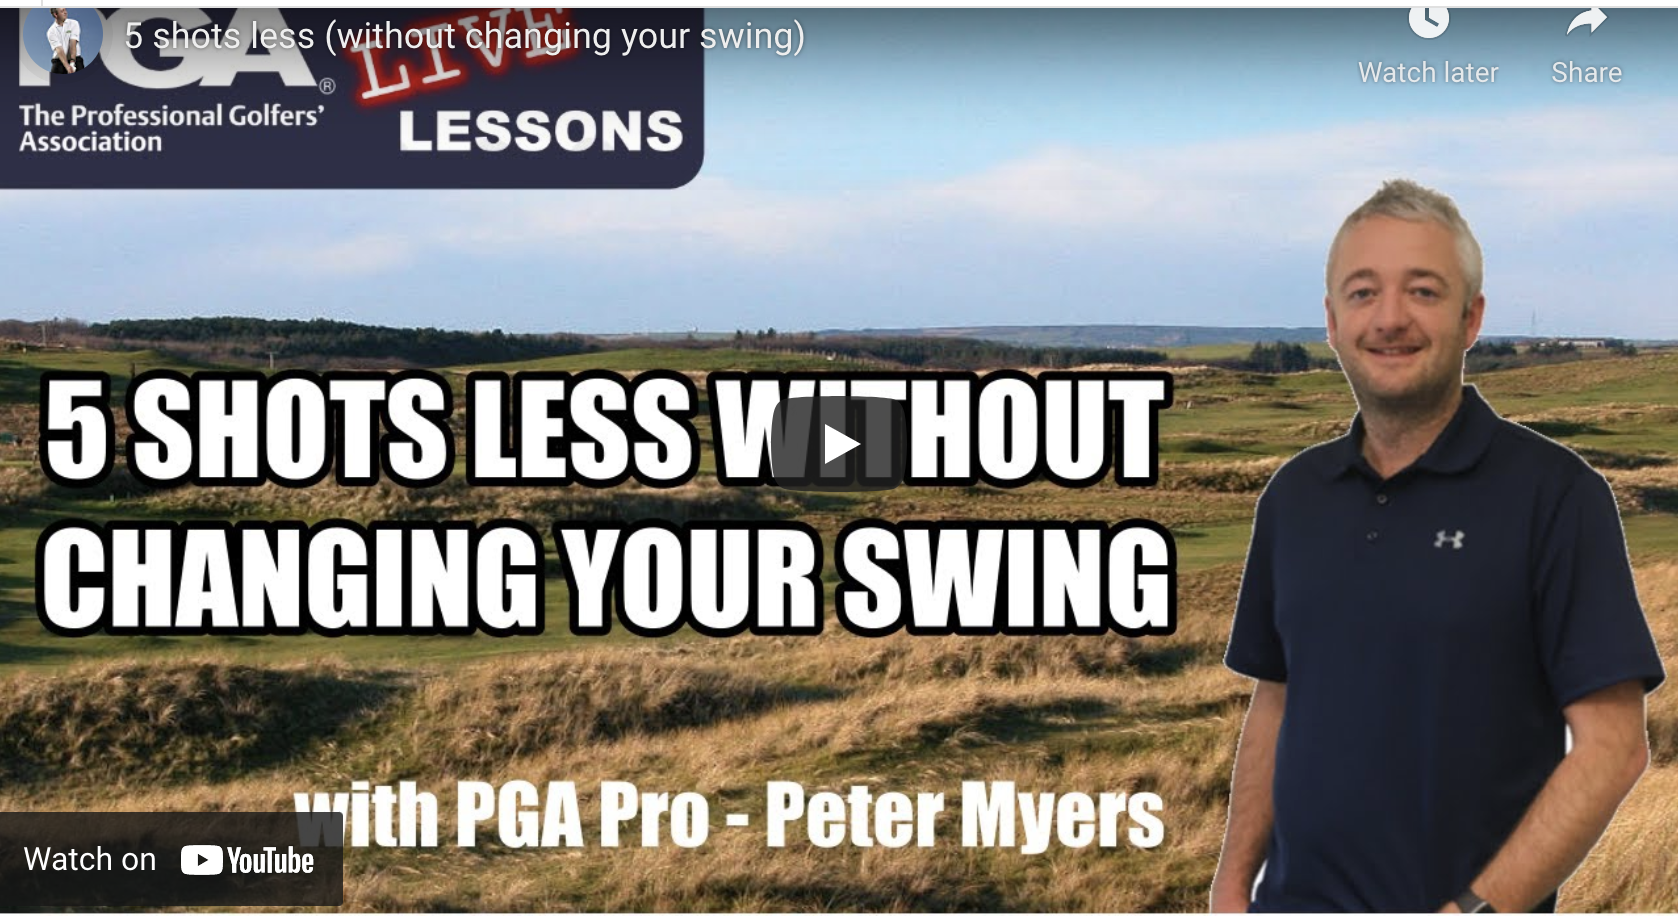 How to improve your golf without changing your swing